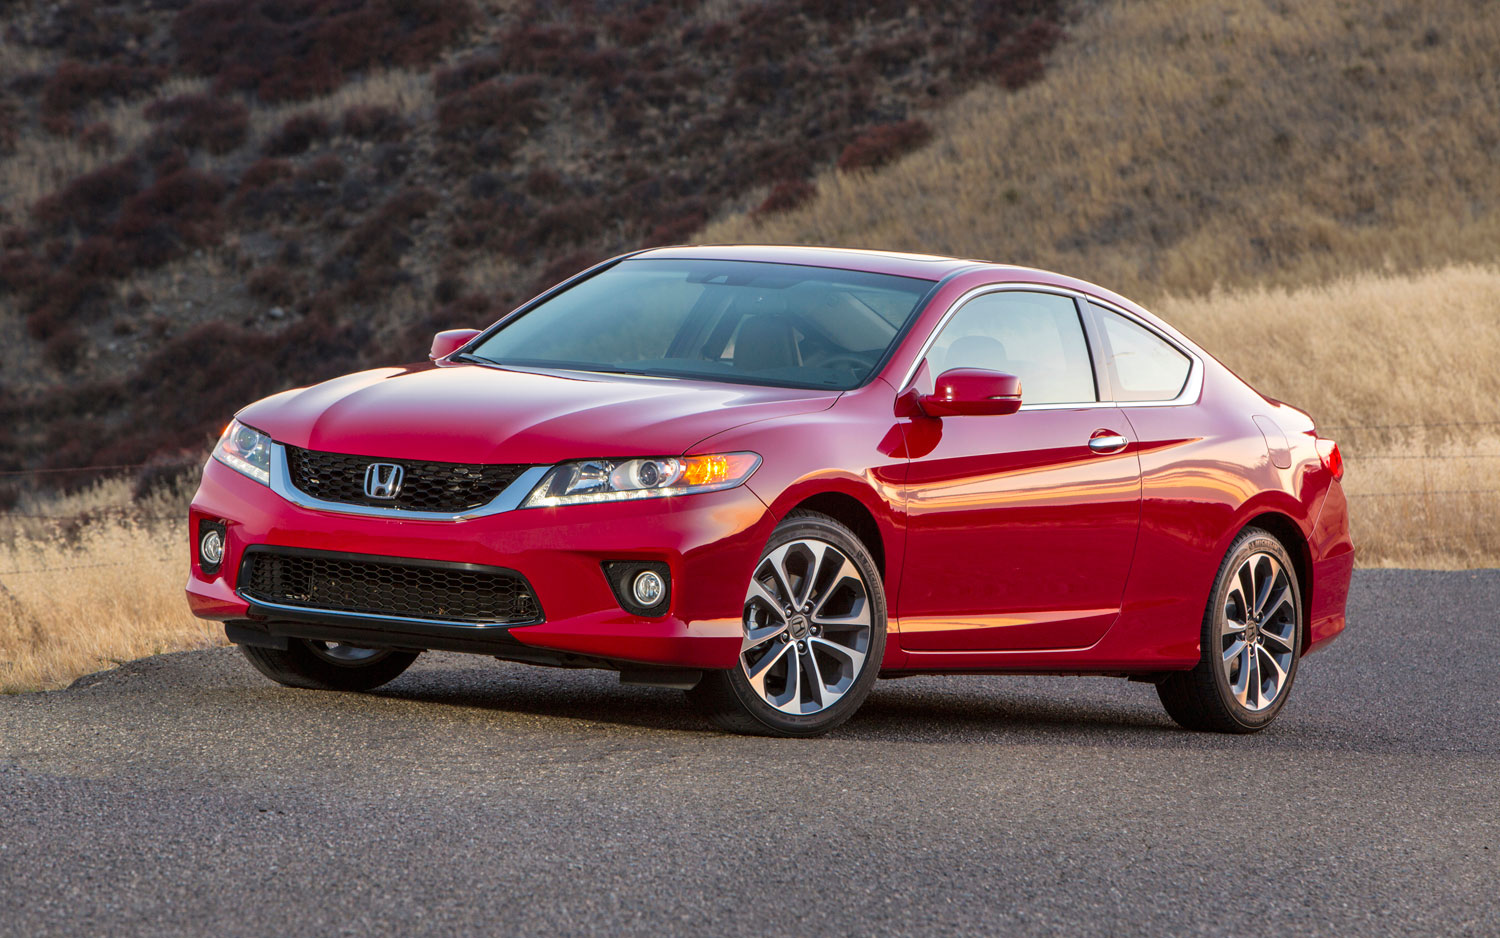 Refreshing Or Revolting 2013 Honda Accord Coupe Motor Trend Rh Motortrend  Com 2010 Honda Accord Coupe V6 Manual Transmission 2007 Honda Accord Coupe  V6 ...